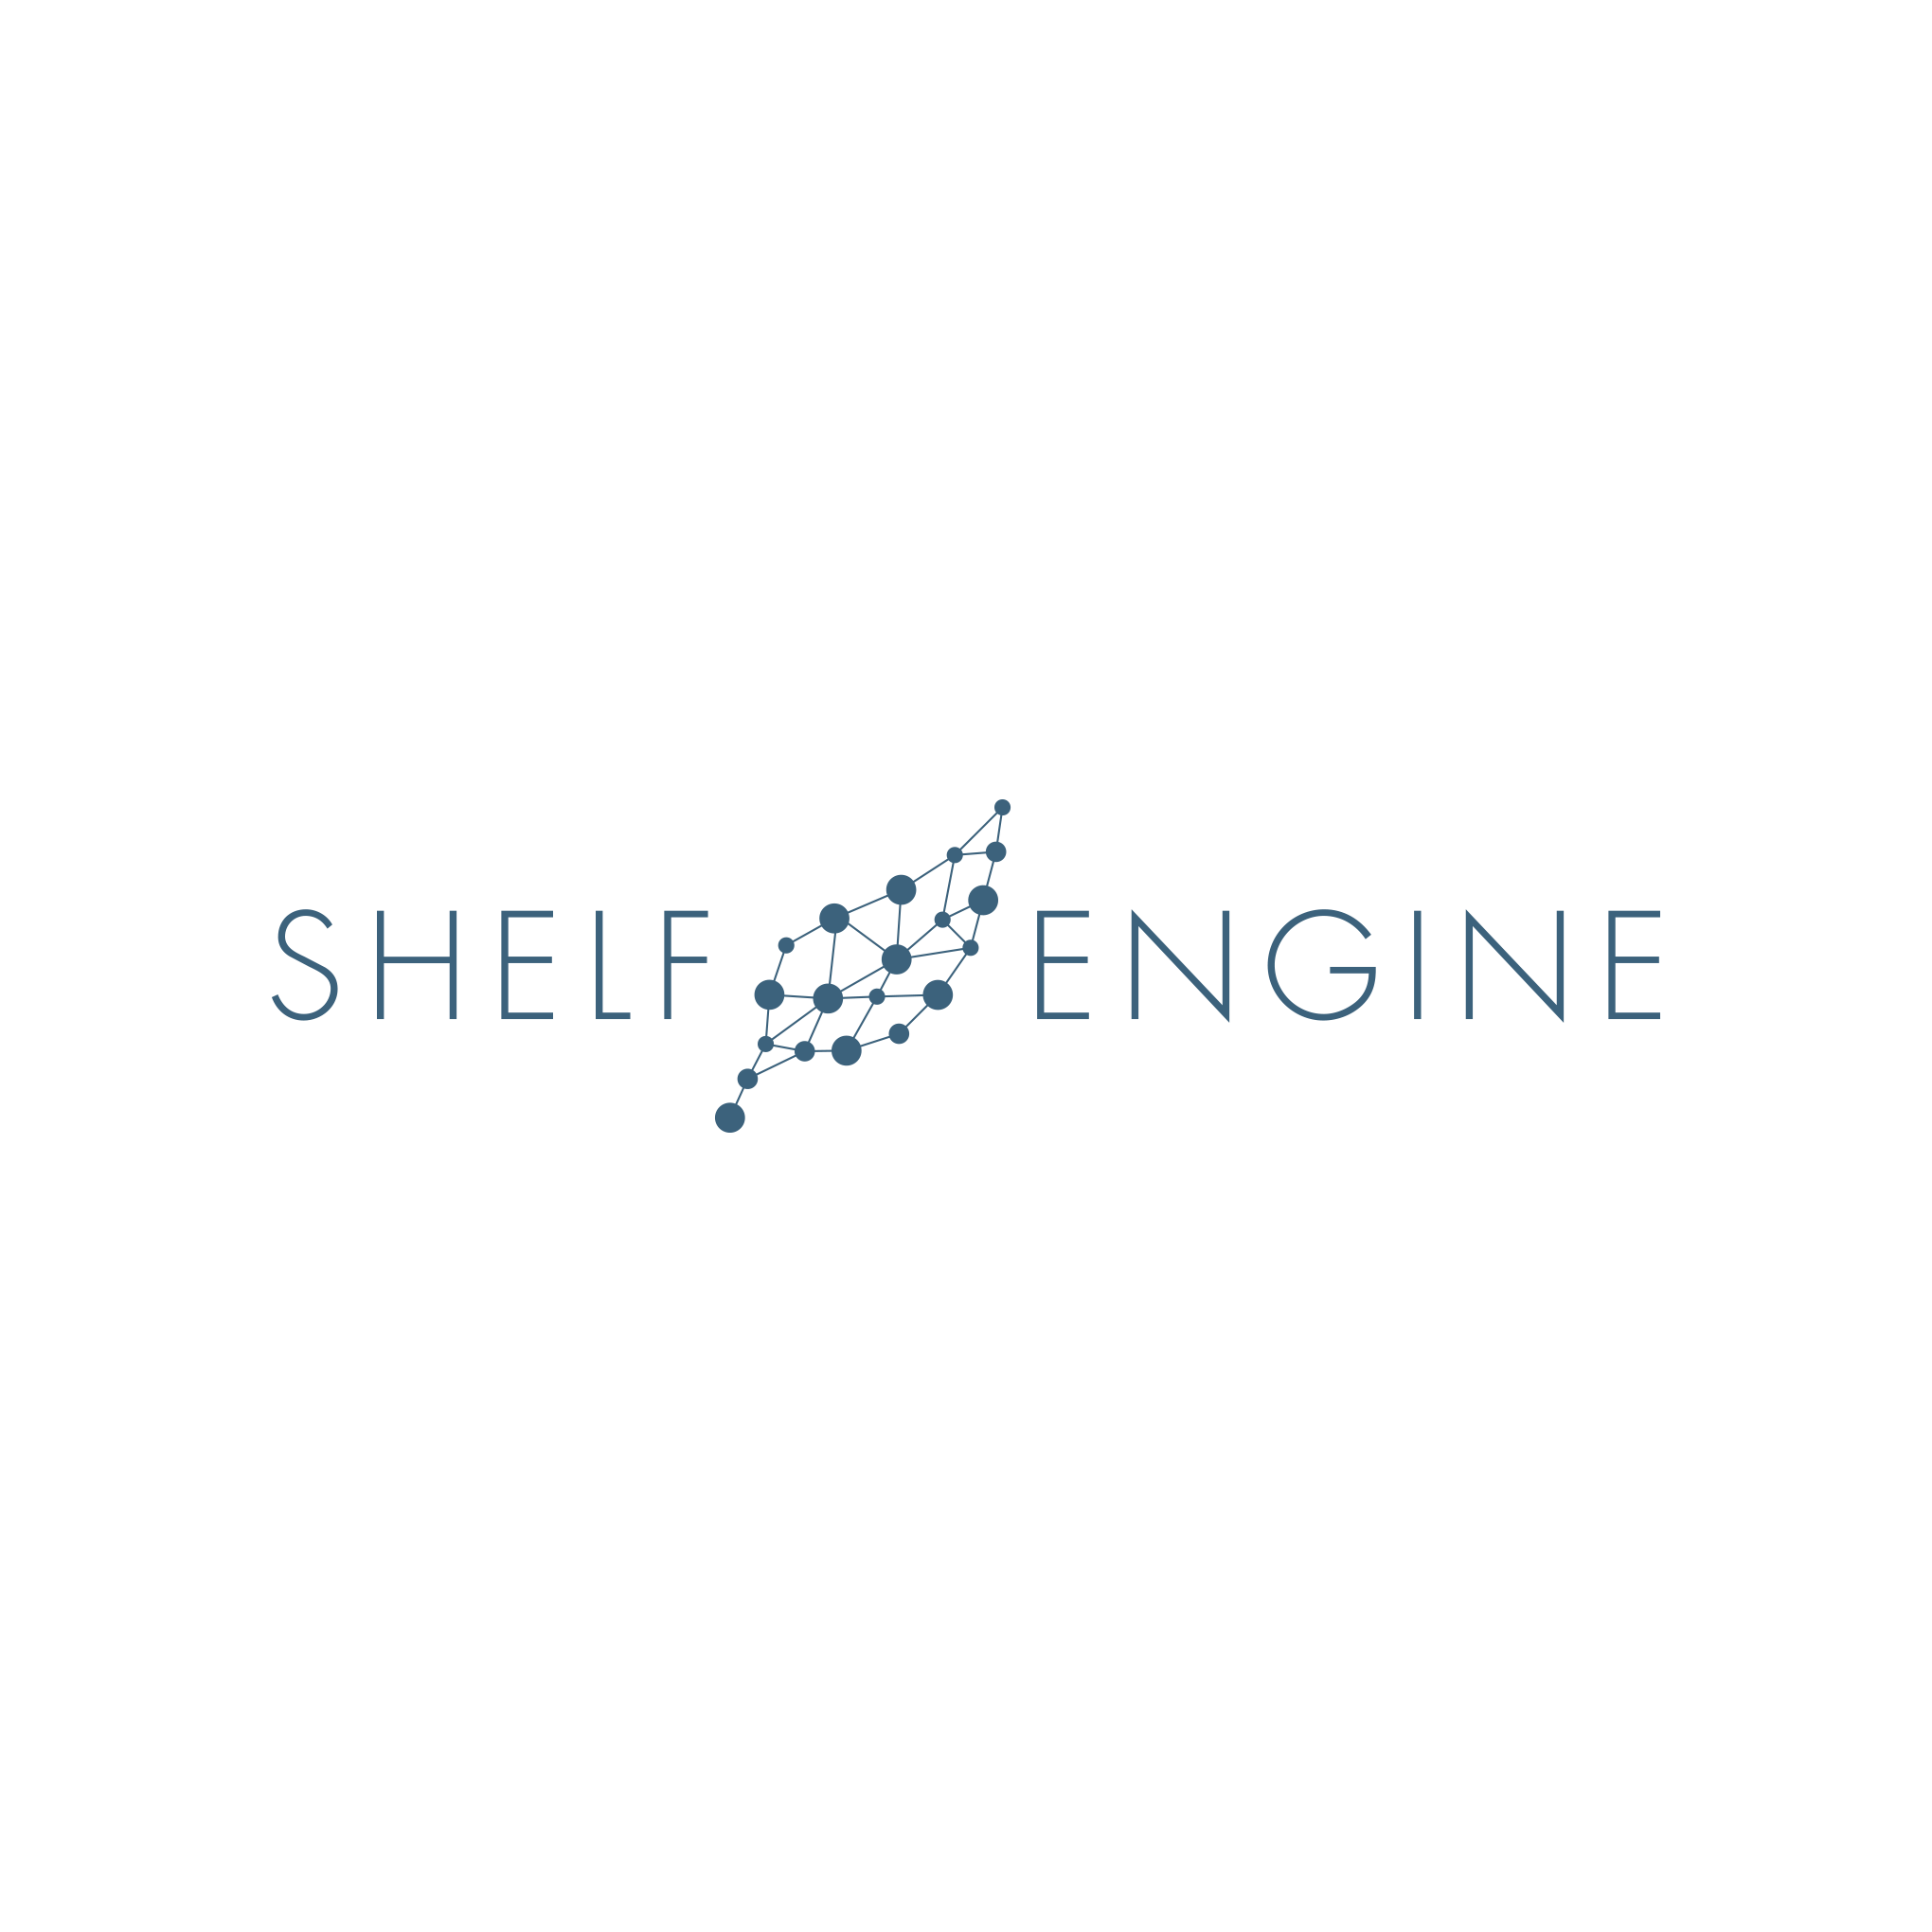 Shelf Engine Logo